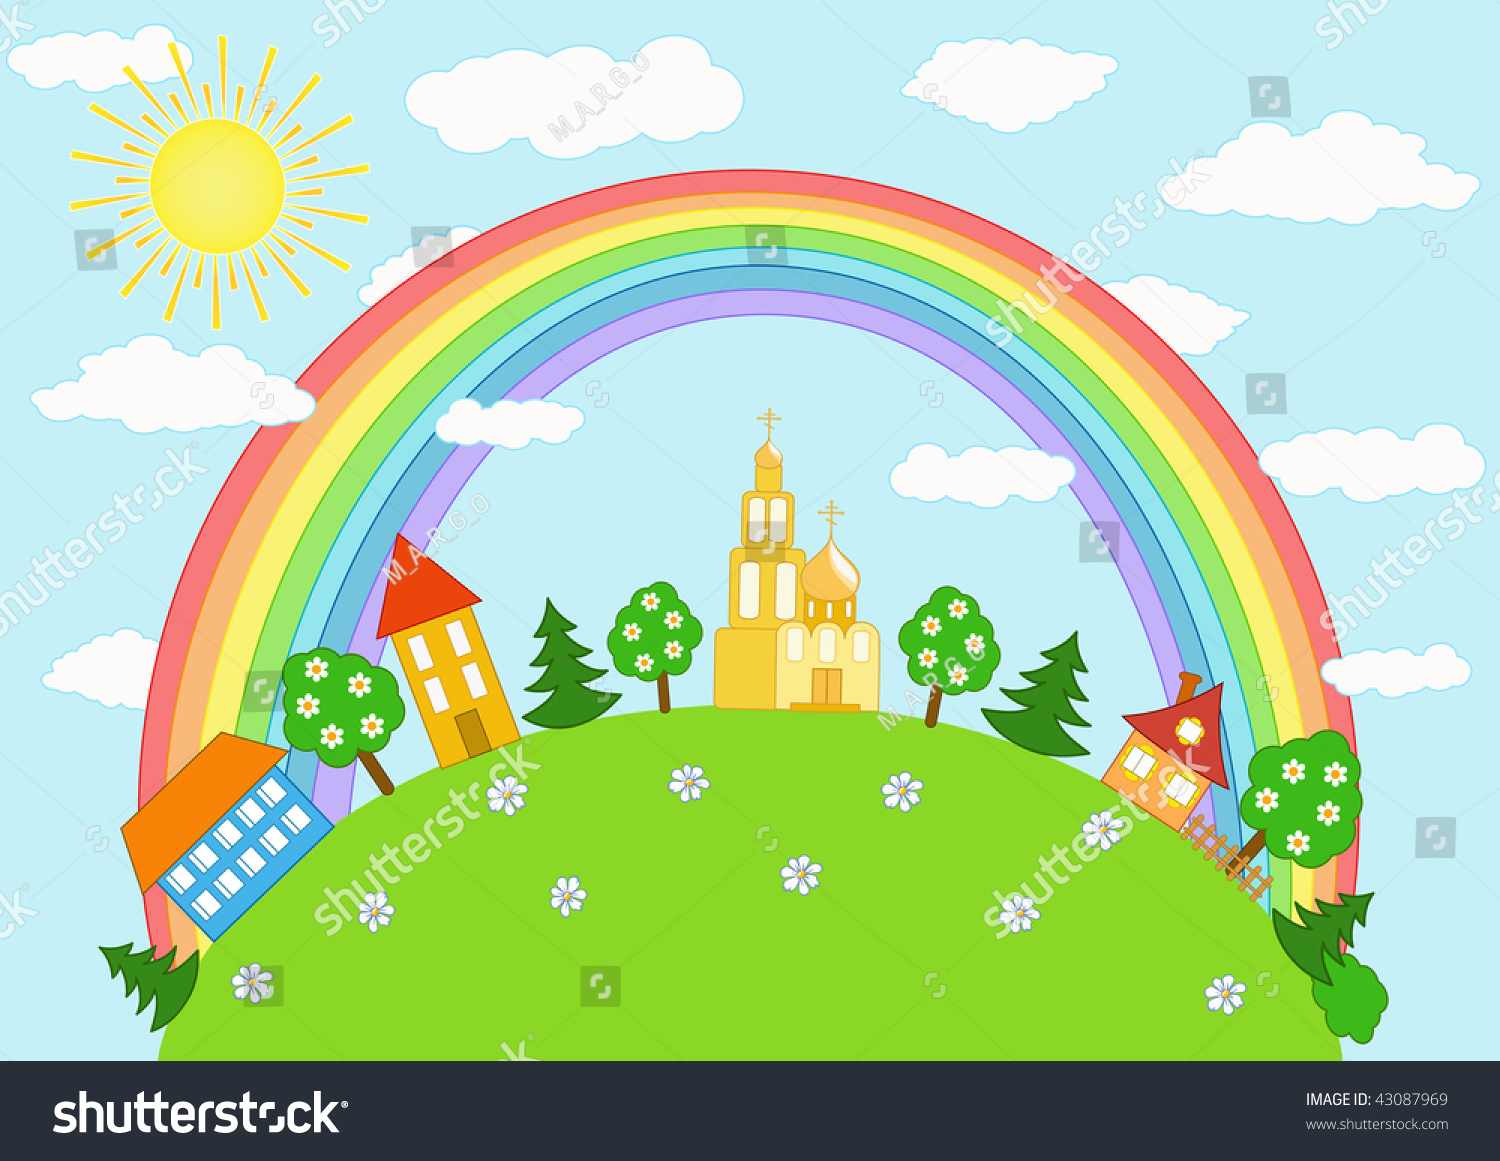 Baby Landscape Rainbow Vector Illustration Stock Vector